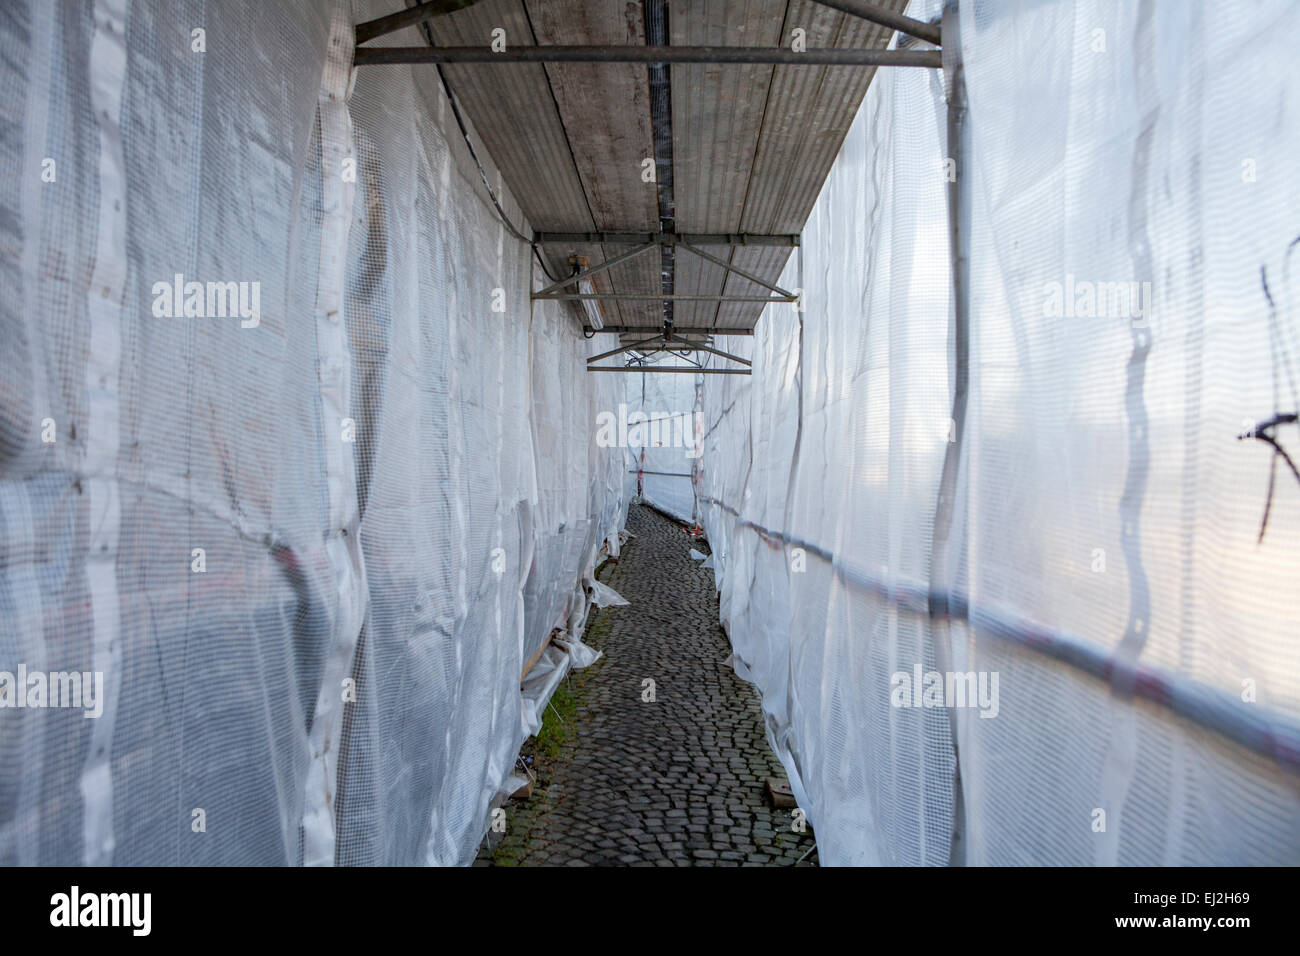 Footpath through a scaffolding with tarpaulin - Stock Image